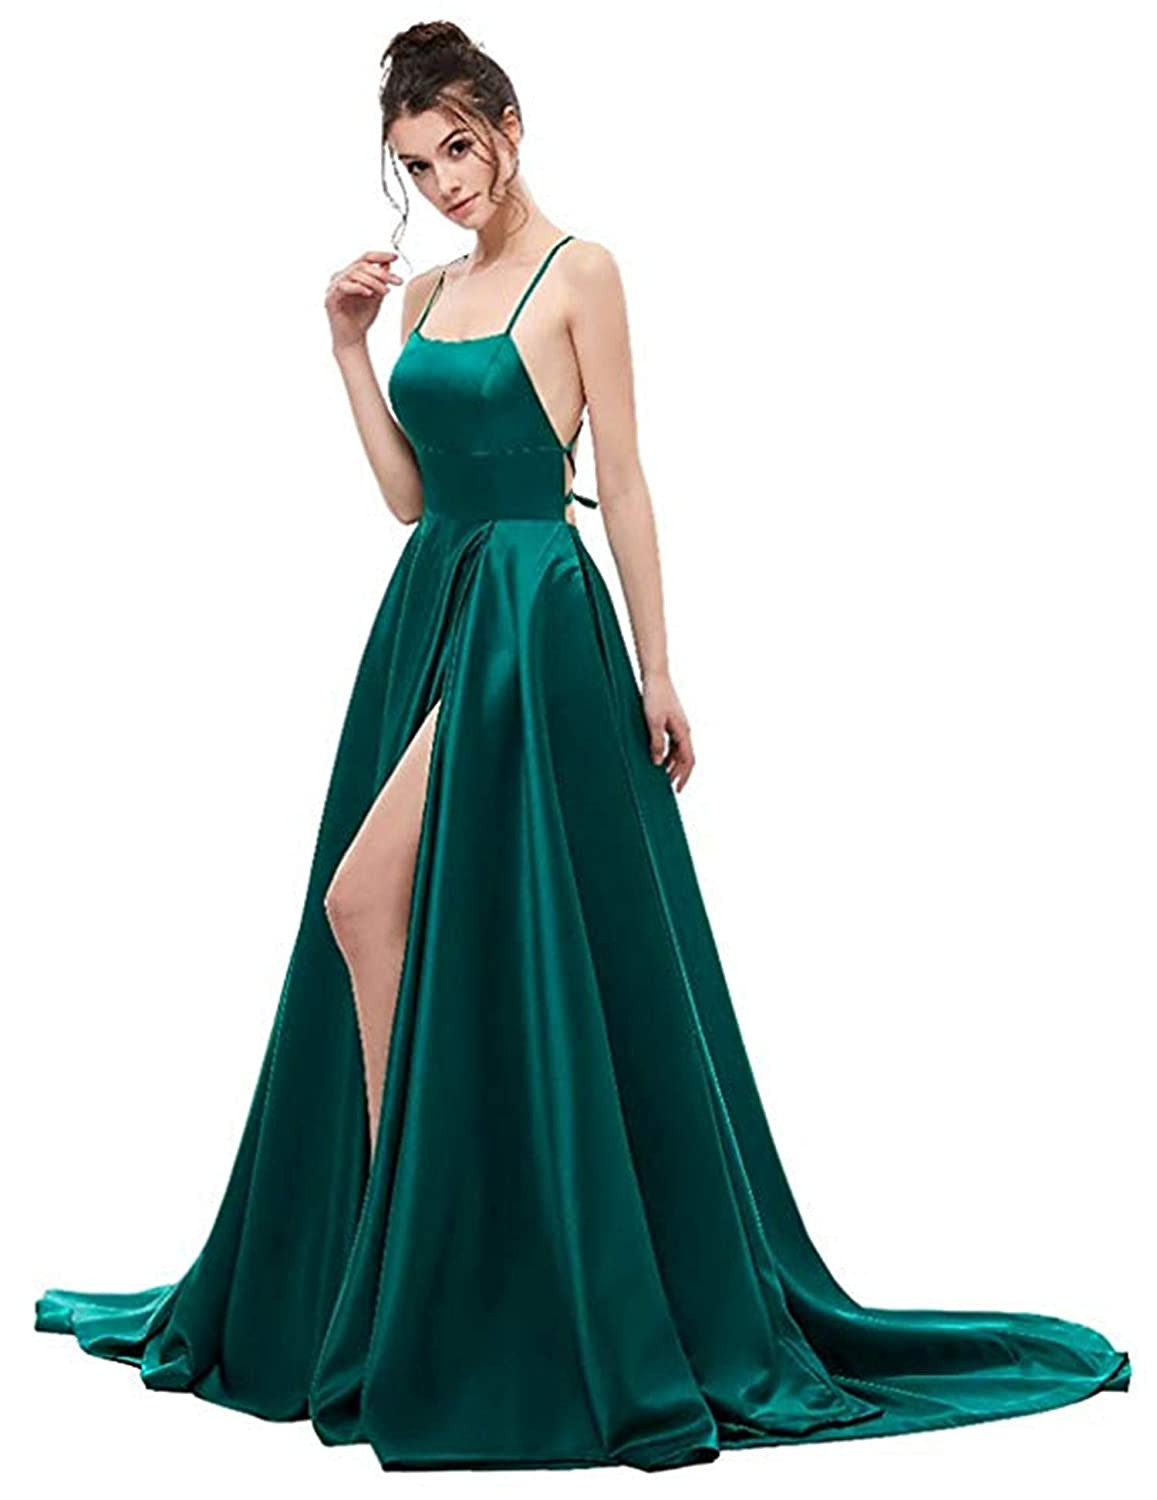 Dark Green Ruiyuhong Women's Satin Sexy Split Prom Dresses Backless Prom Evening Gowns